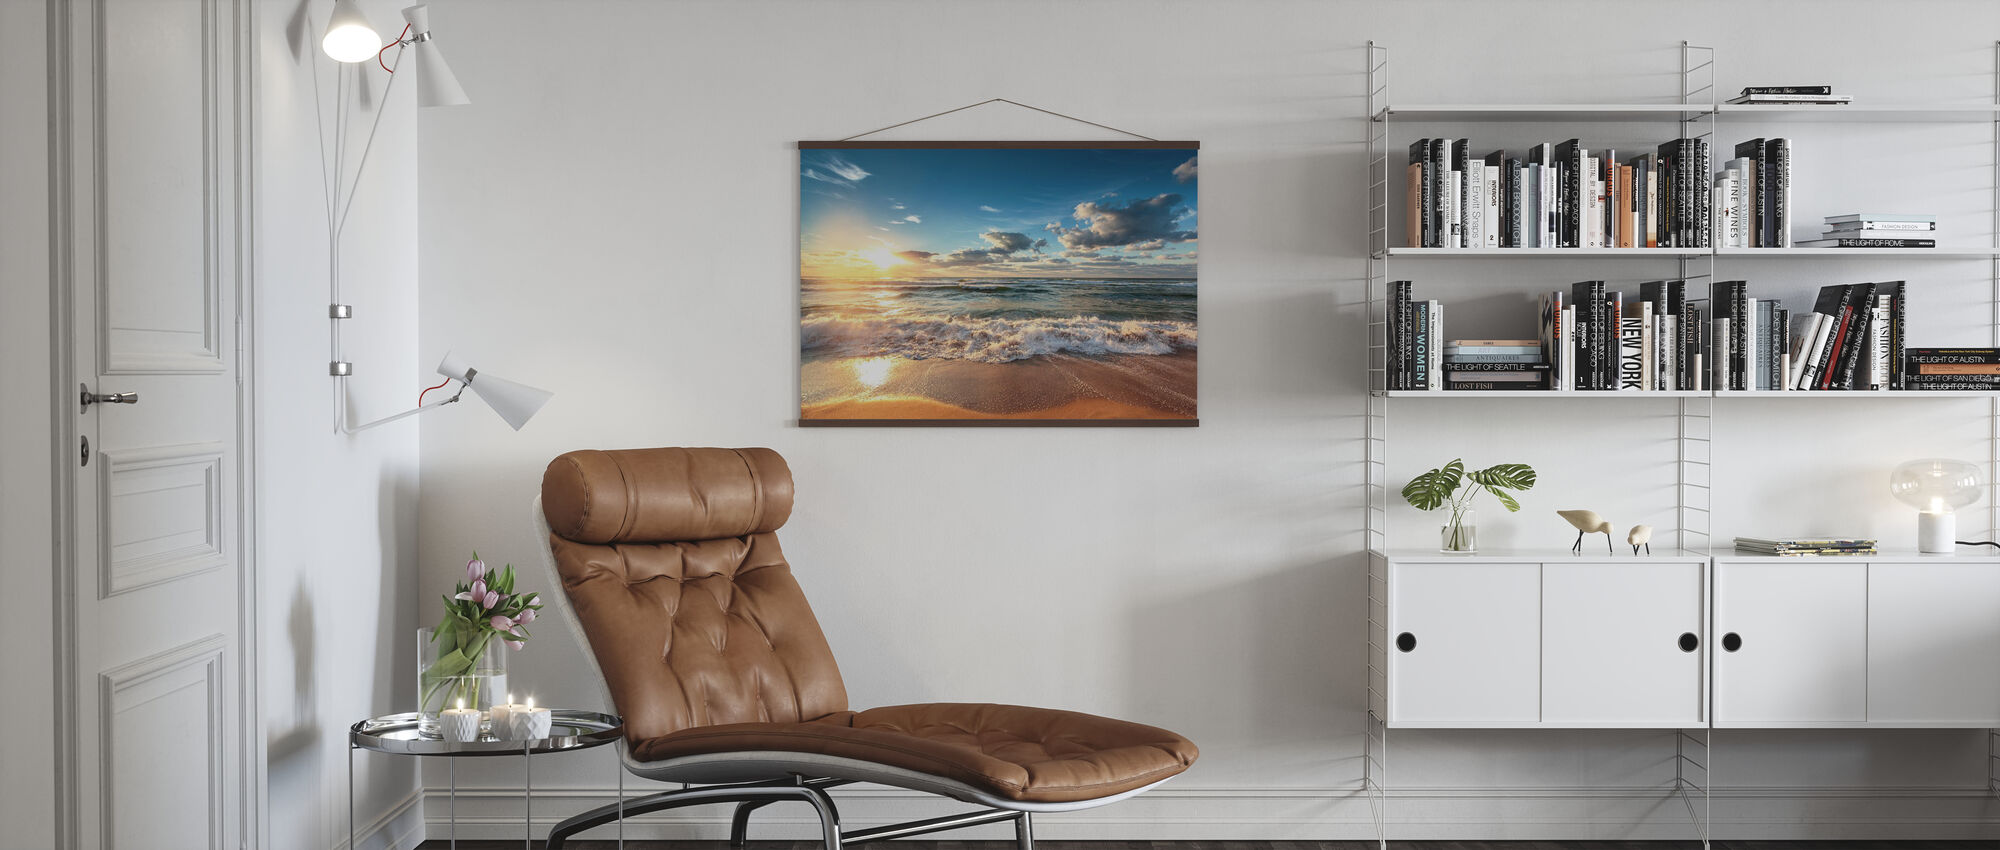 Cloudscape over the Sea - Poster - Living Room